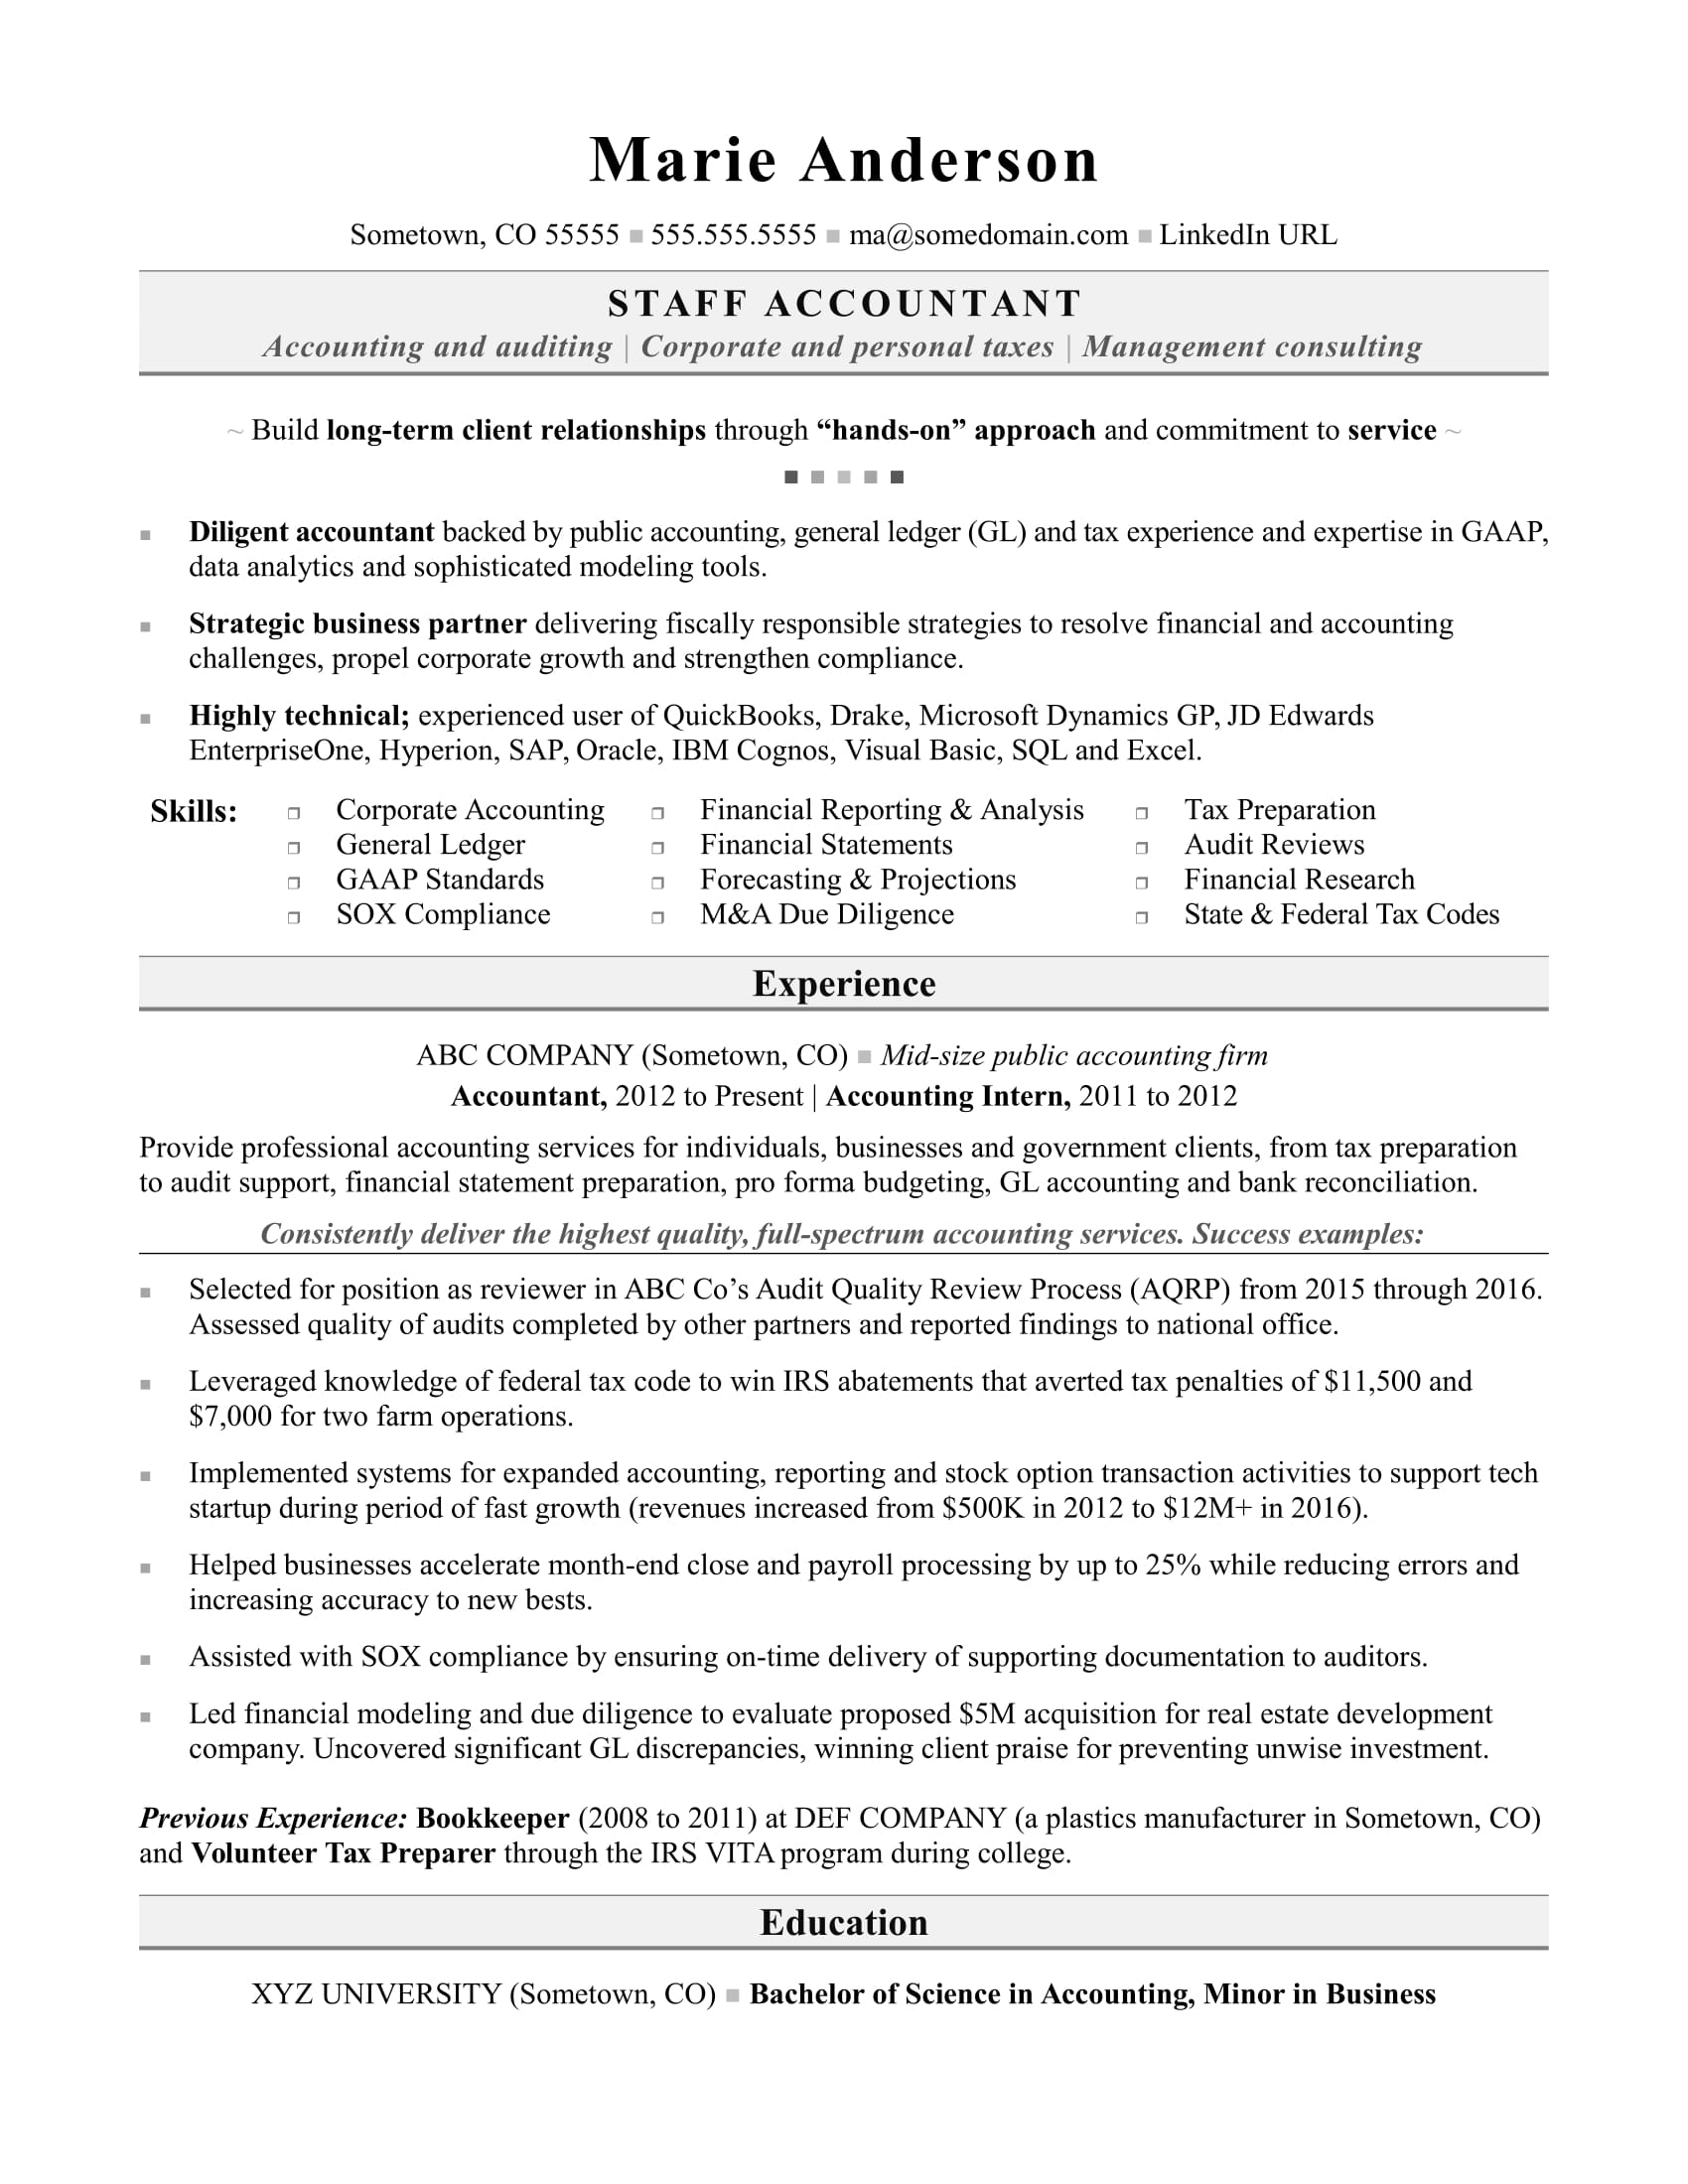 accounting resume sample monster objective statements for accountant cabinet maker Resume Resume Objective Statements For Accounting